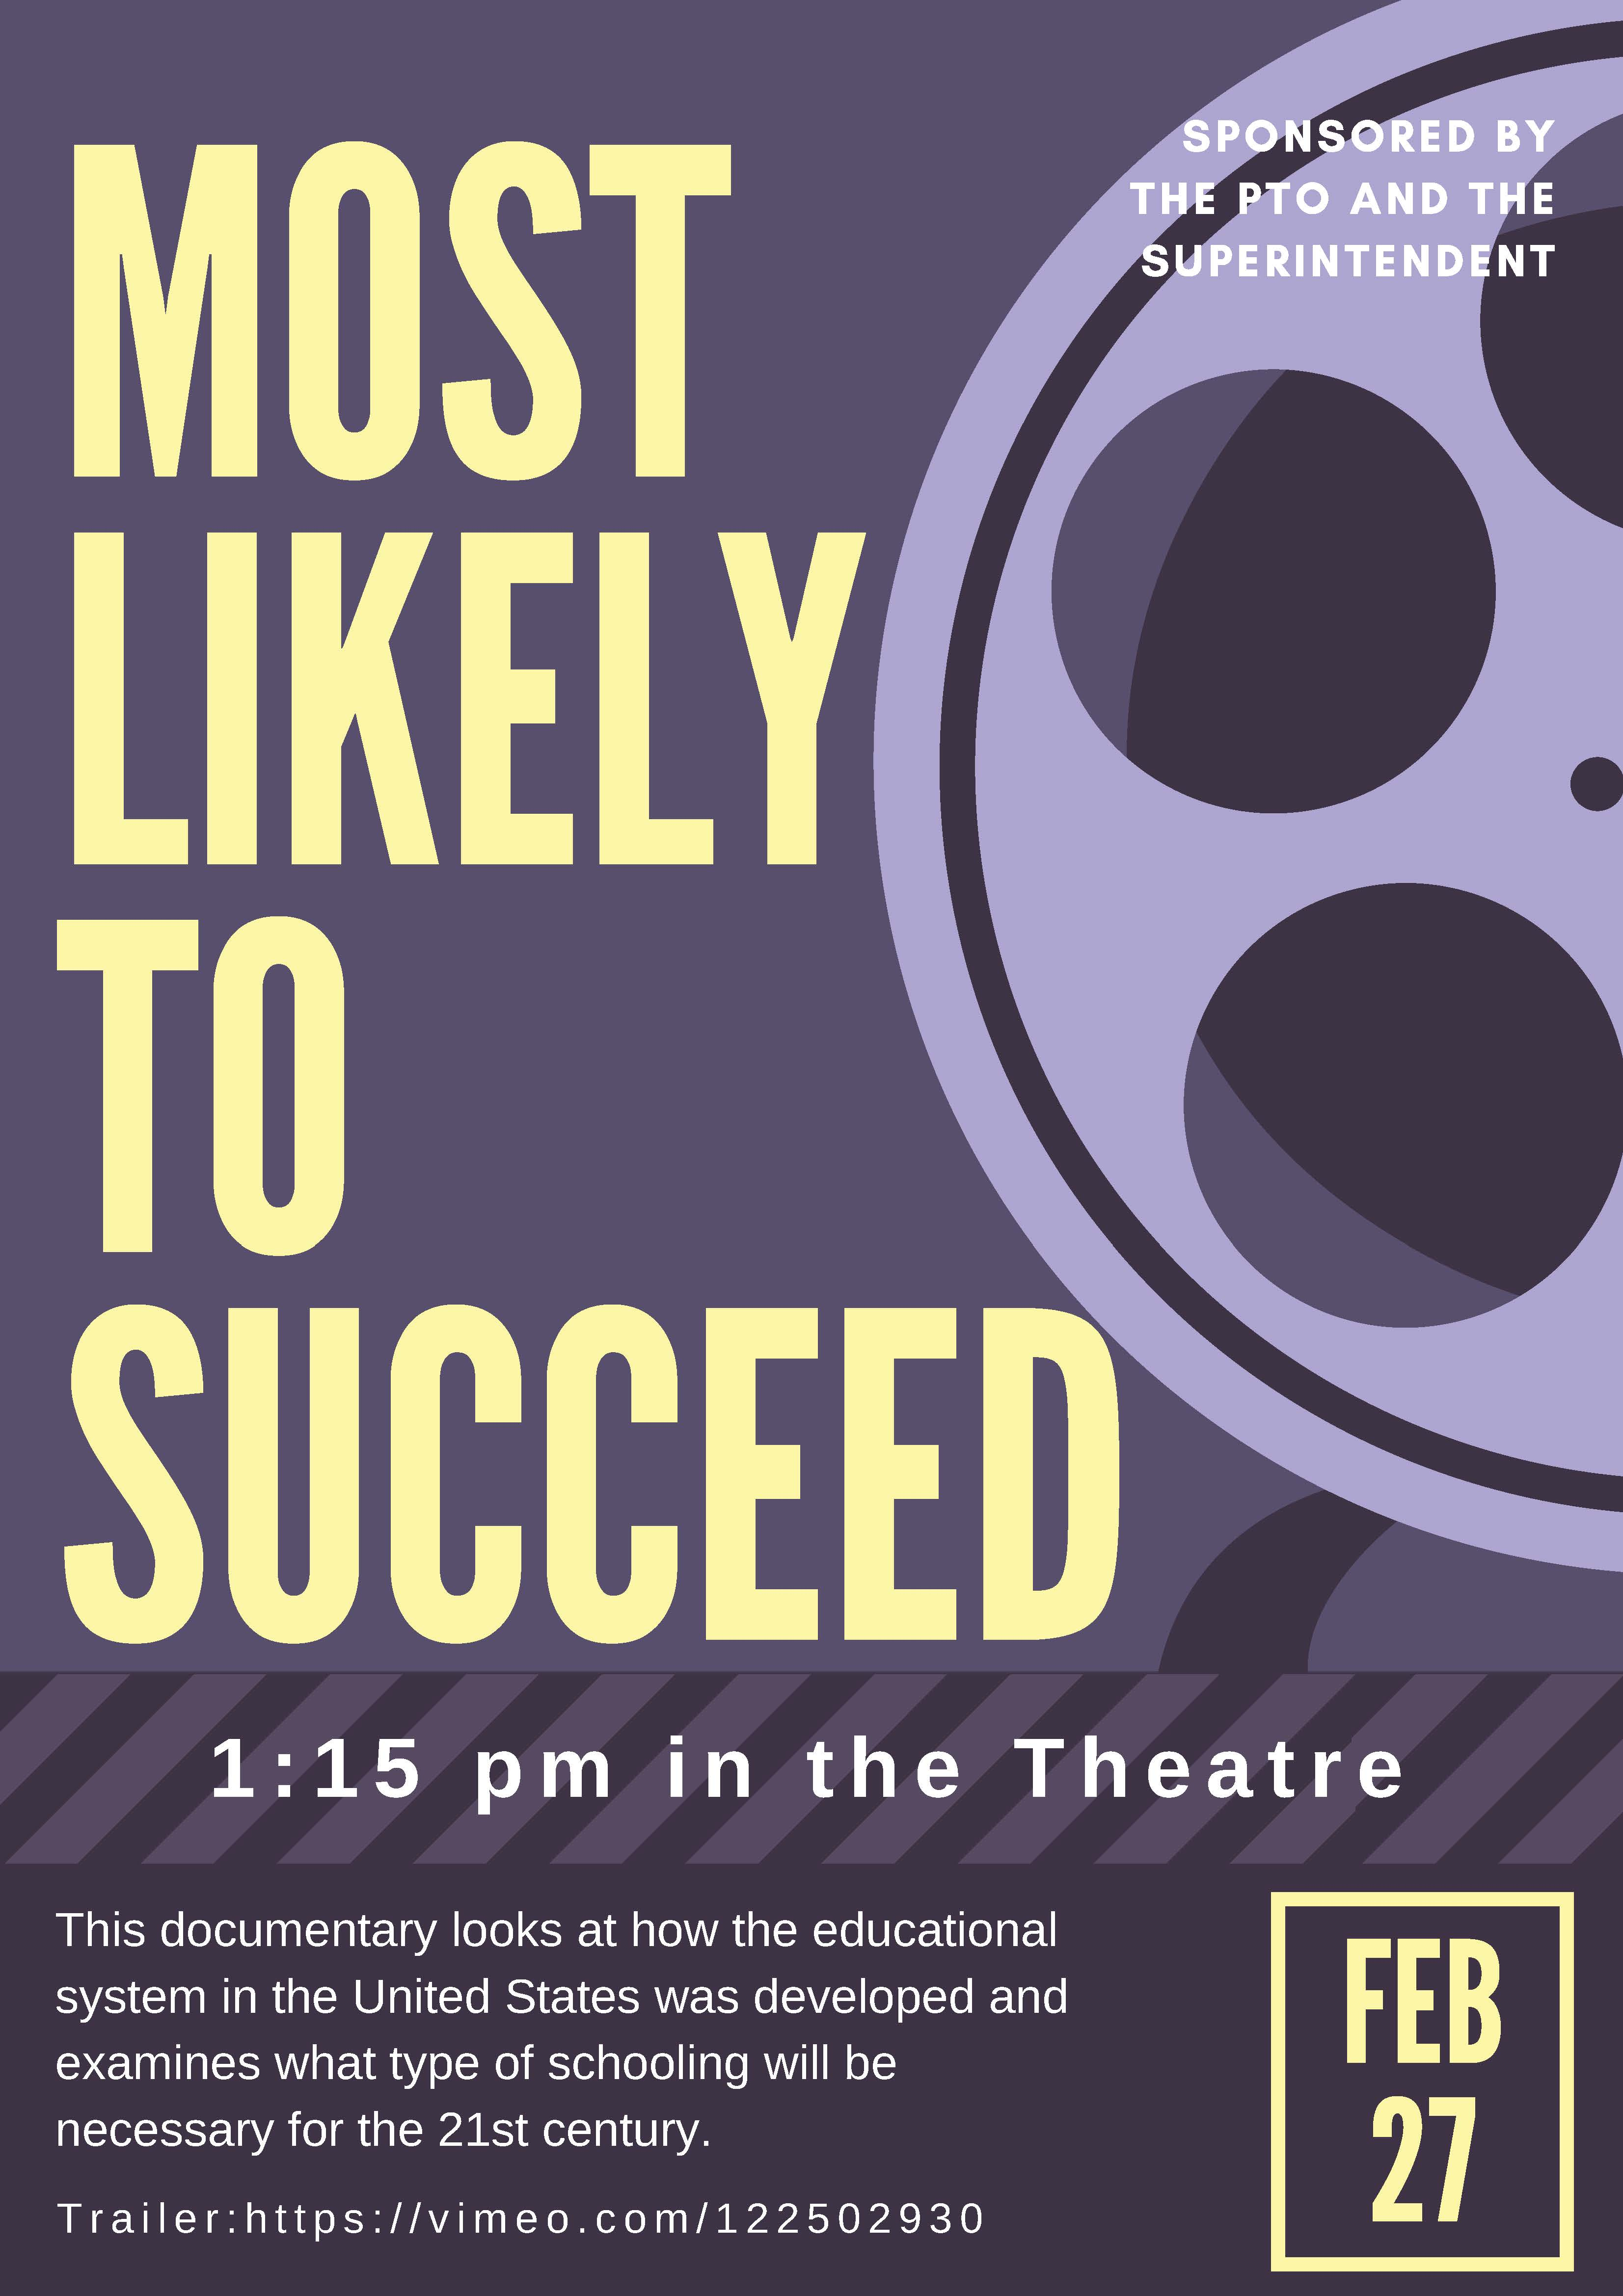 Most likely to succeed Poster